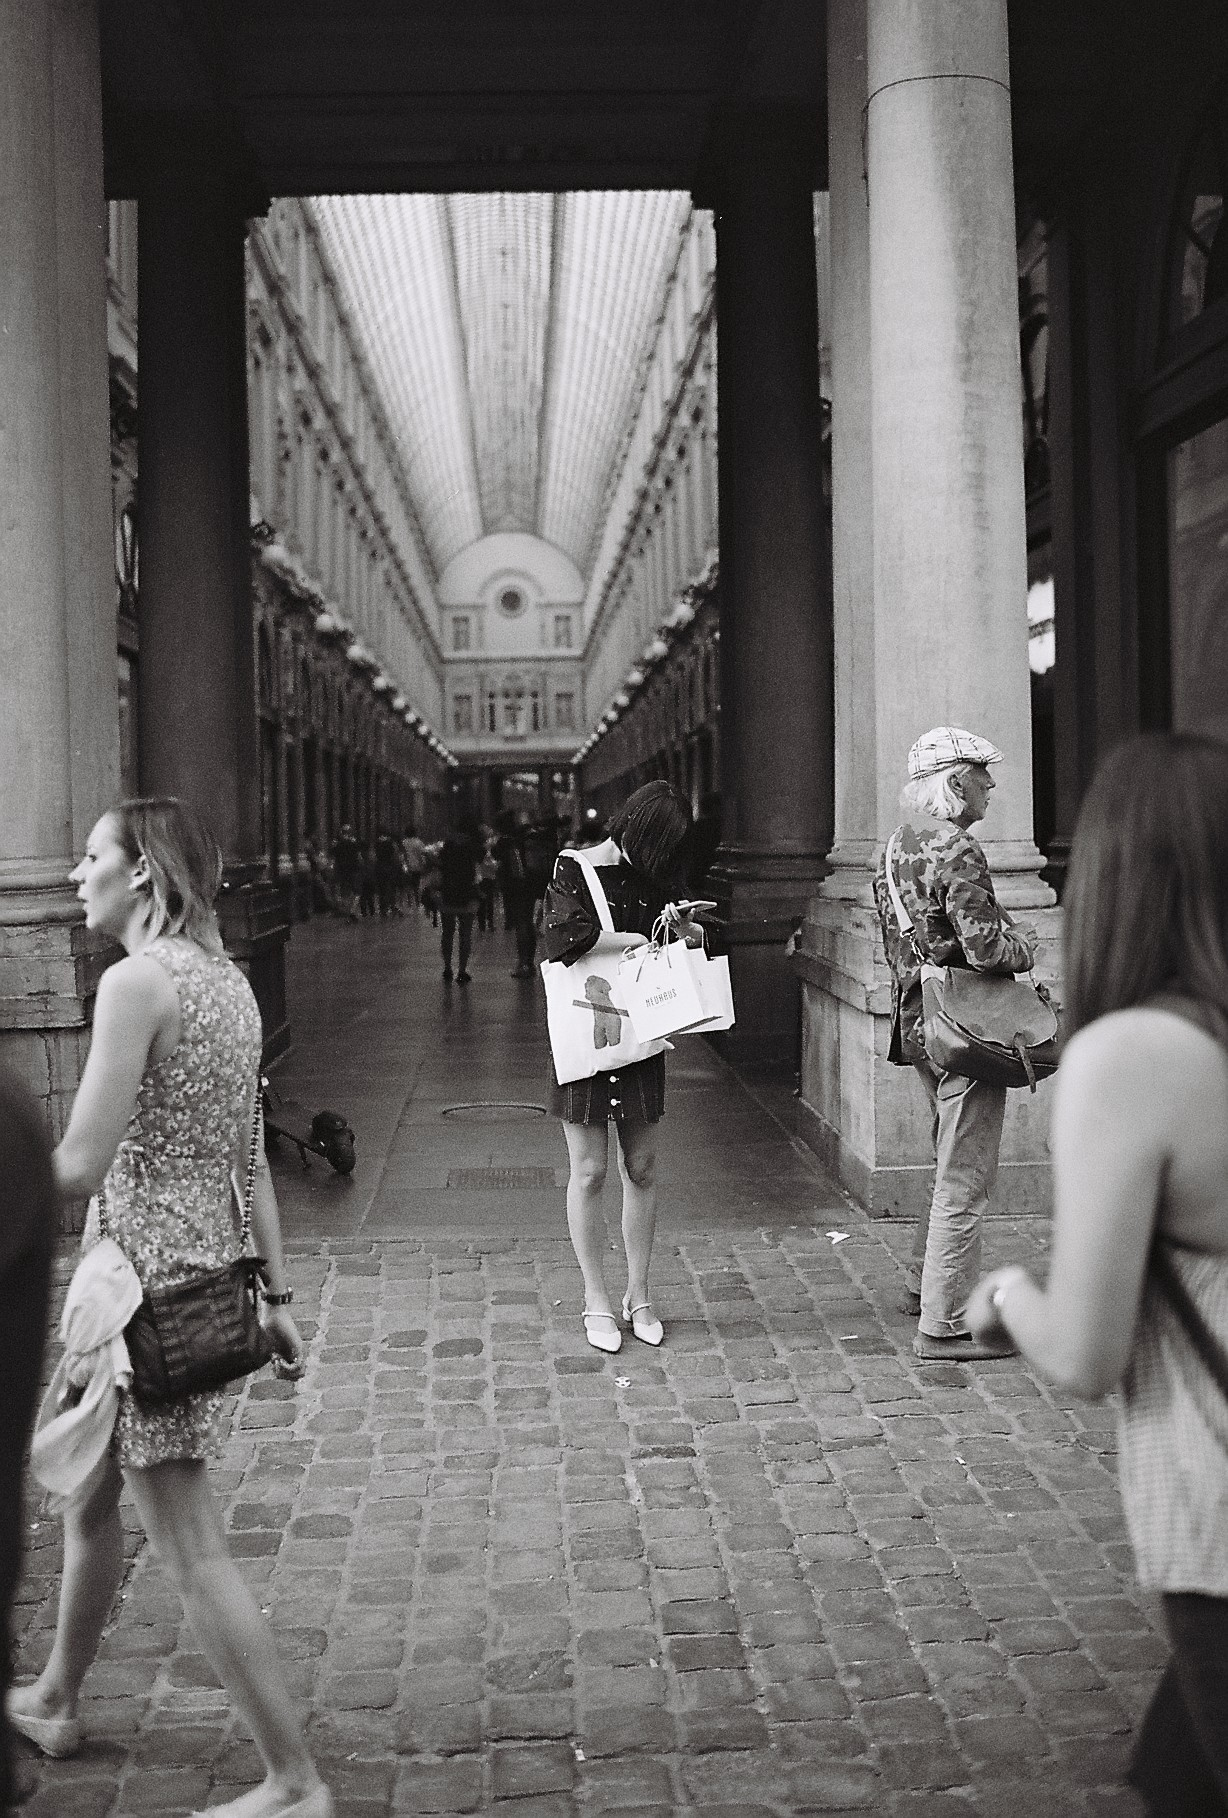 Analog photography brings more soul to the image